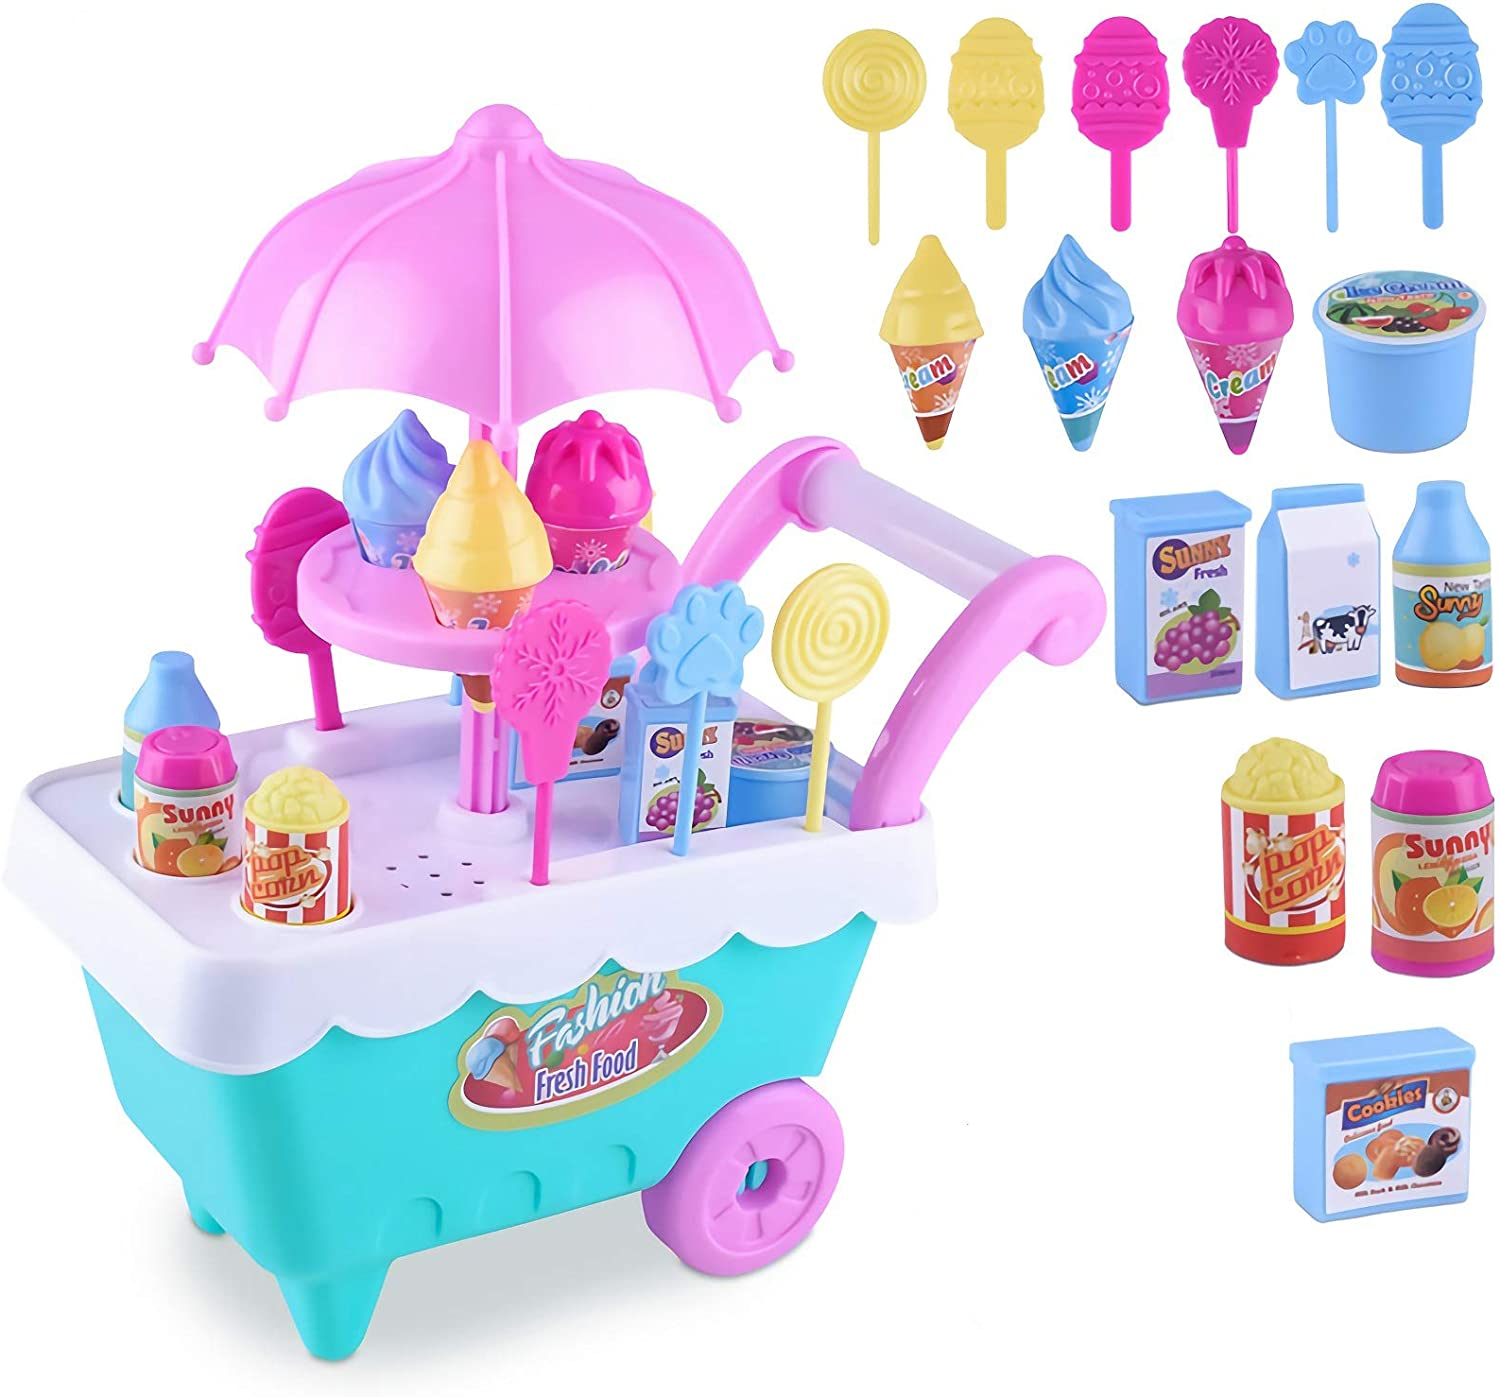 JX Pretend Play Set Ice Cream Toy Cart, Ice Cream Cart for Toddlers, Food Truck for Toddlers, Ice Cream Truck Pretend Food Play Set Gift for Kids, Toddlers, Boys & Girls, Ages 3 4 5 6 7 8